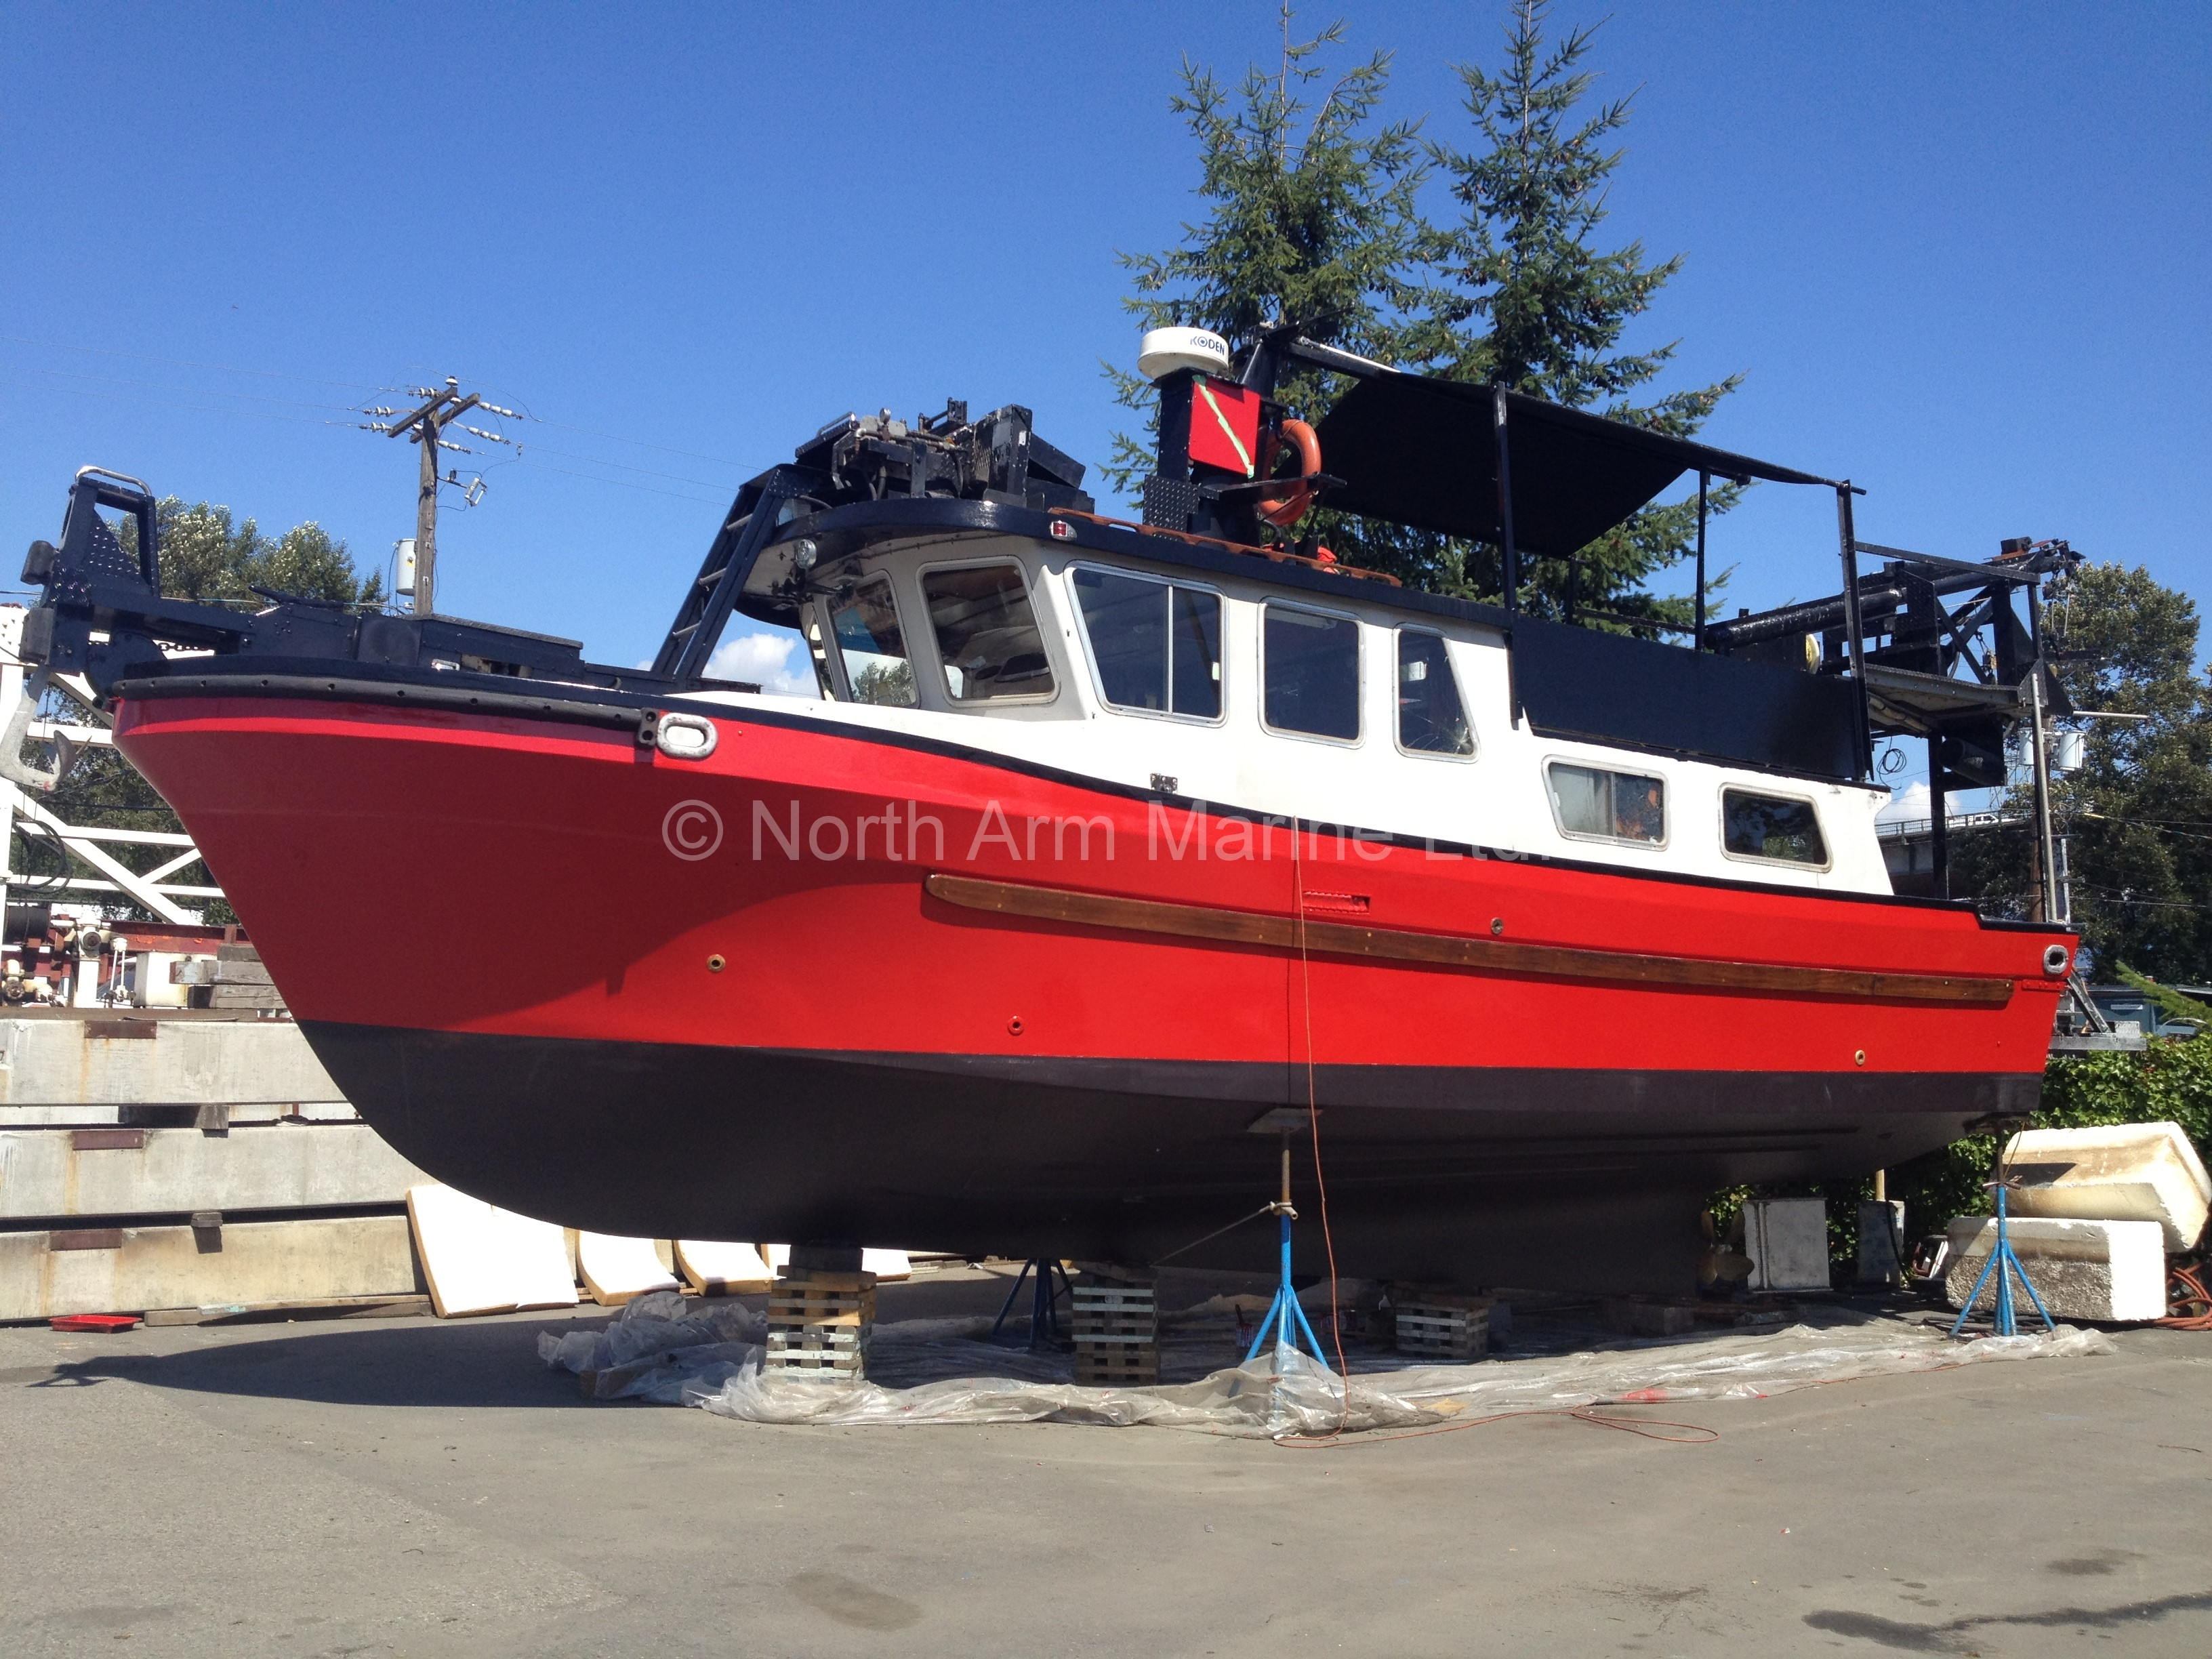 Forced Air Propane Heater >> 1980 Commercial Dive/Utility/Pleasure Boat | North Arm Marine Ltd.